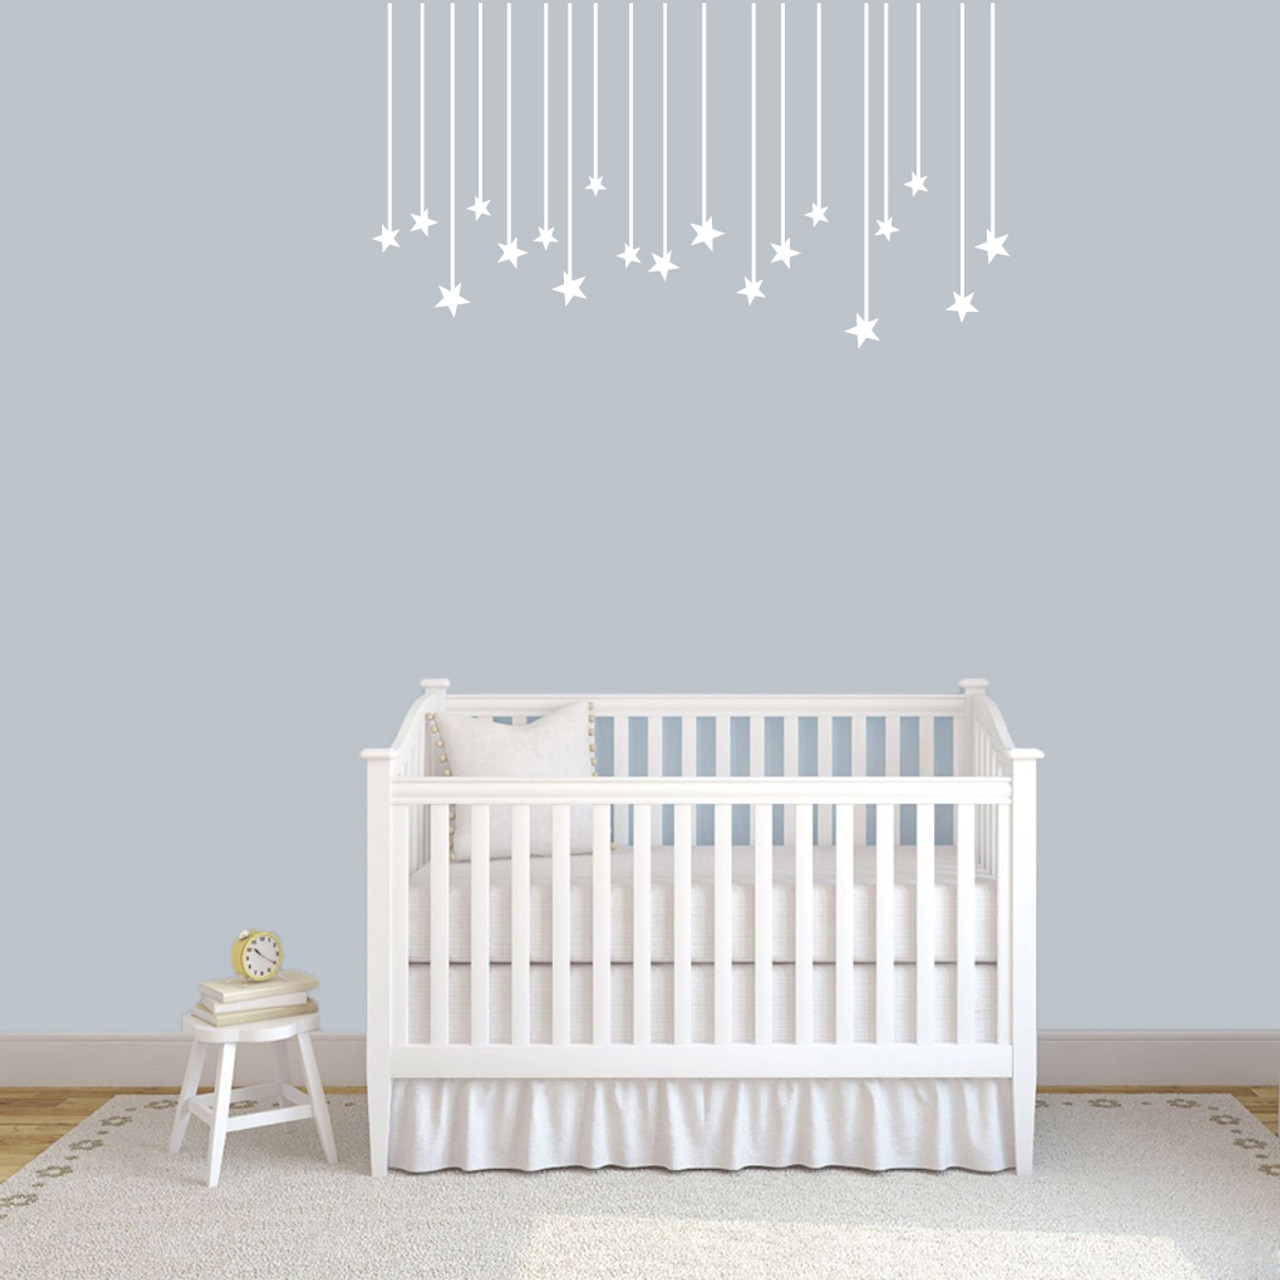 Stars Room Decor Hanging Stars Wall Decal